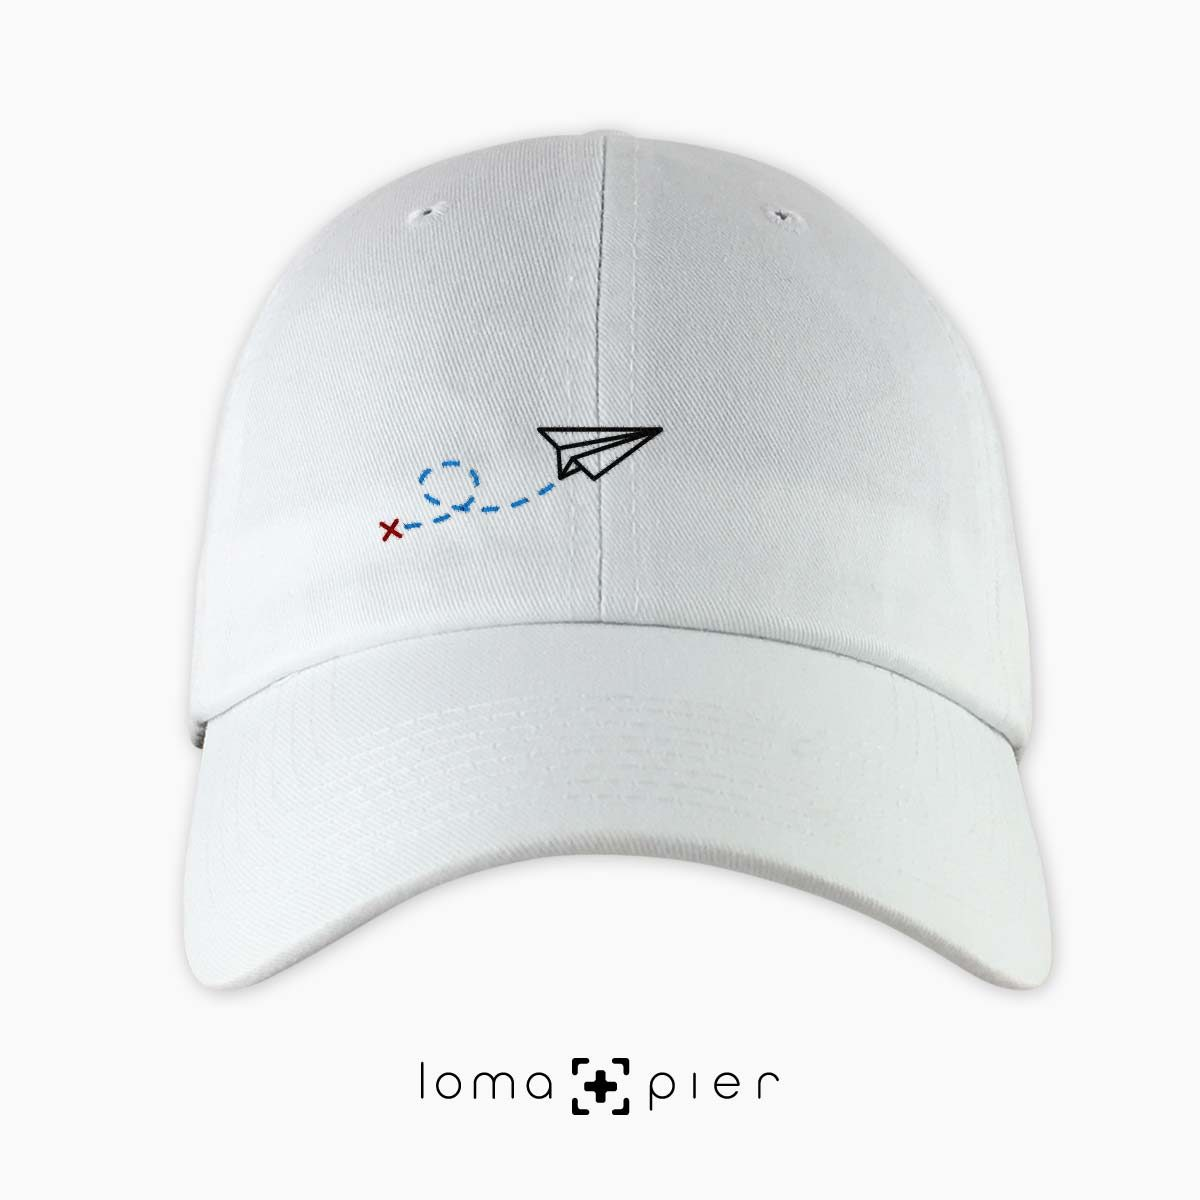 PAPER AIRPLANE icon embroidered on a white dad hat by loma+pier hat store made in the USA